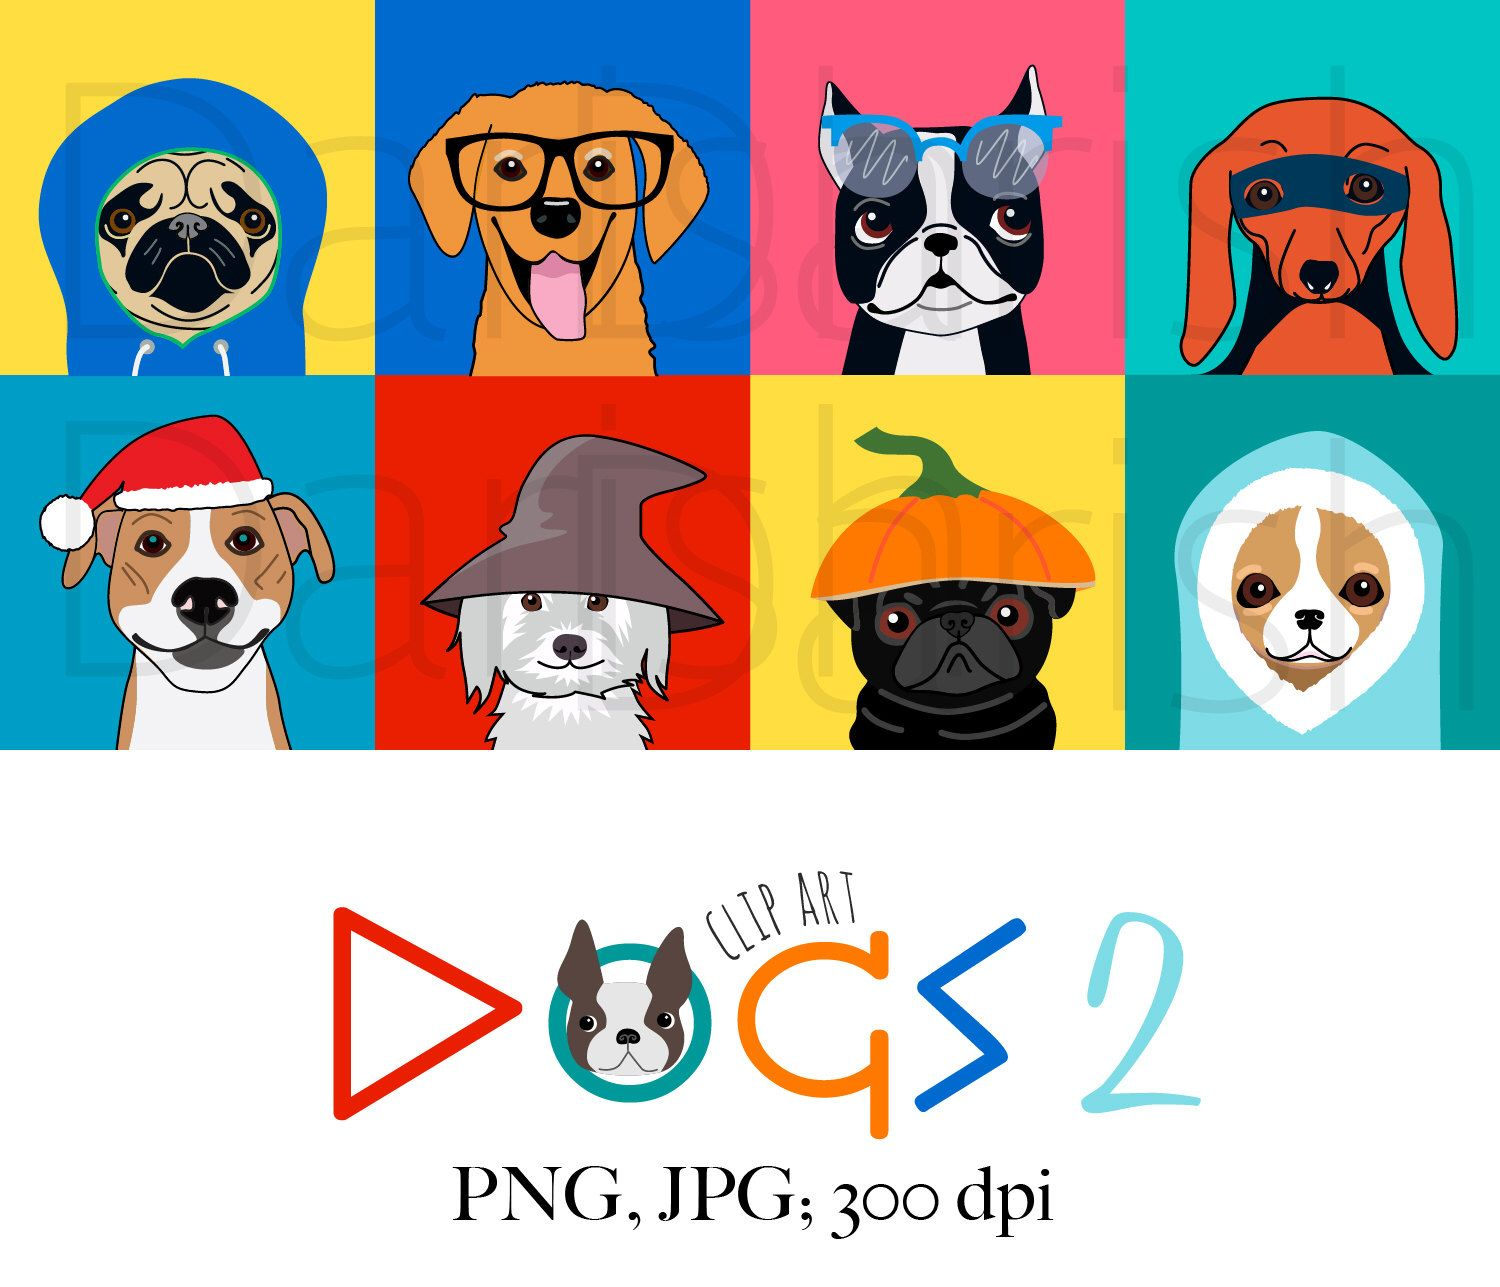 dog holiday clip art dog clipart dog halloween animal clipart dog characters [ 1500 x 1287 Pixel ]